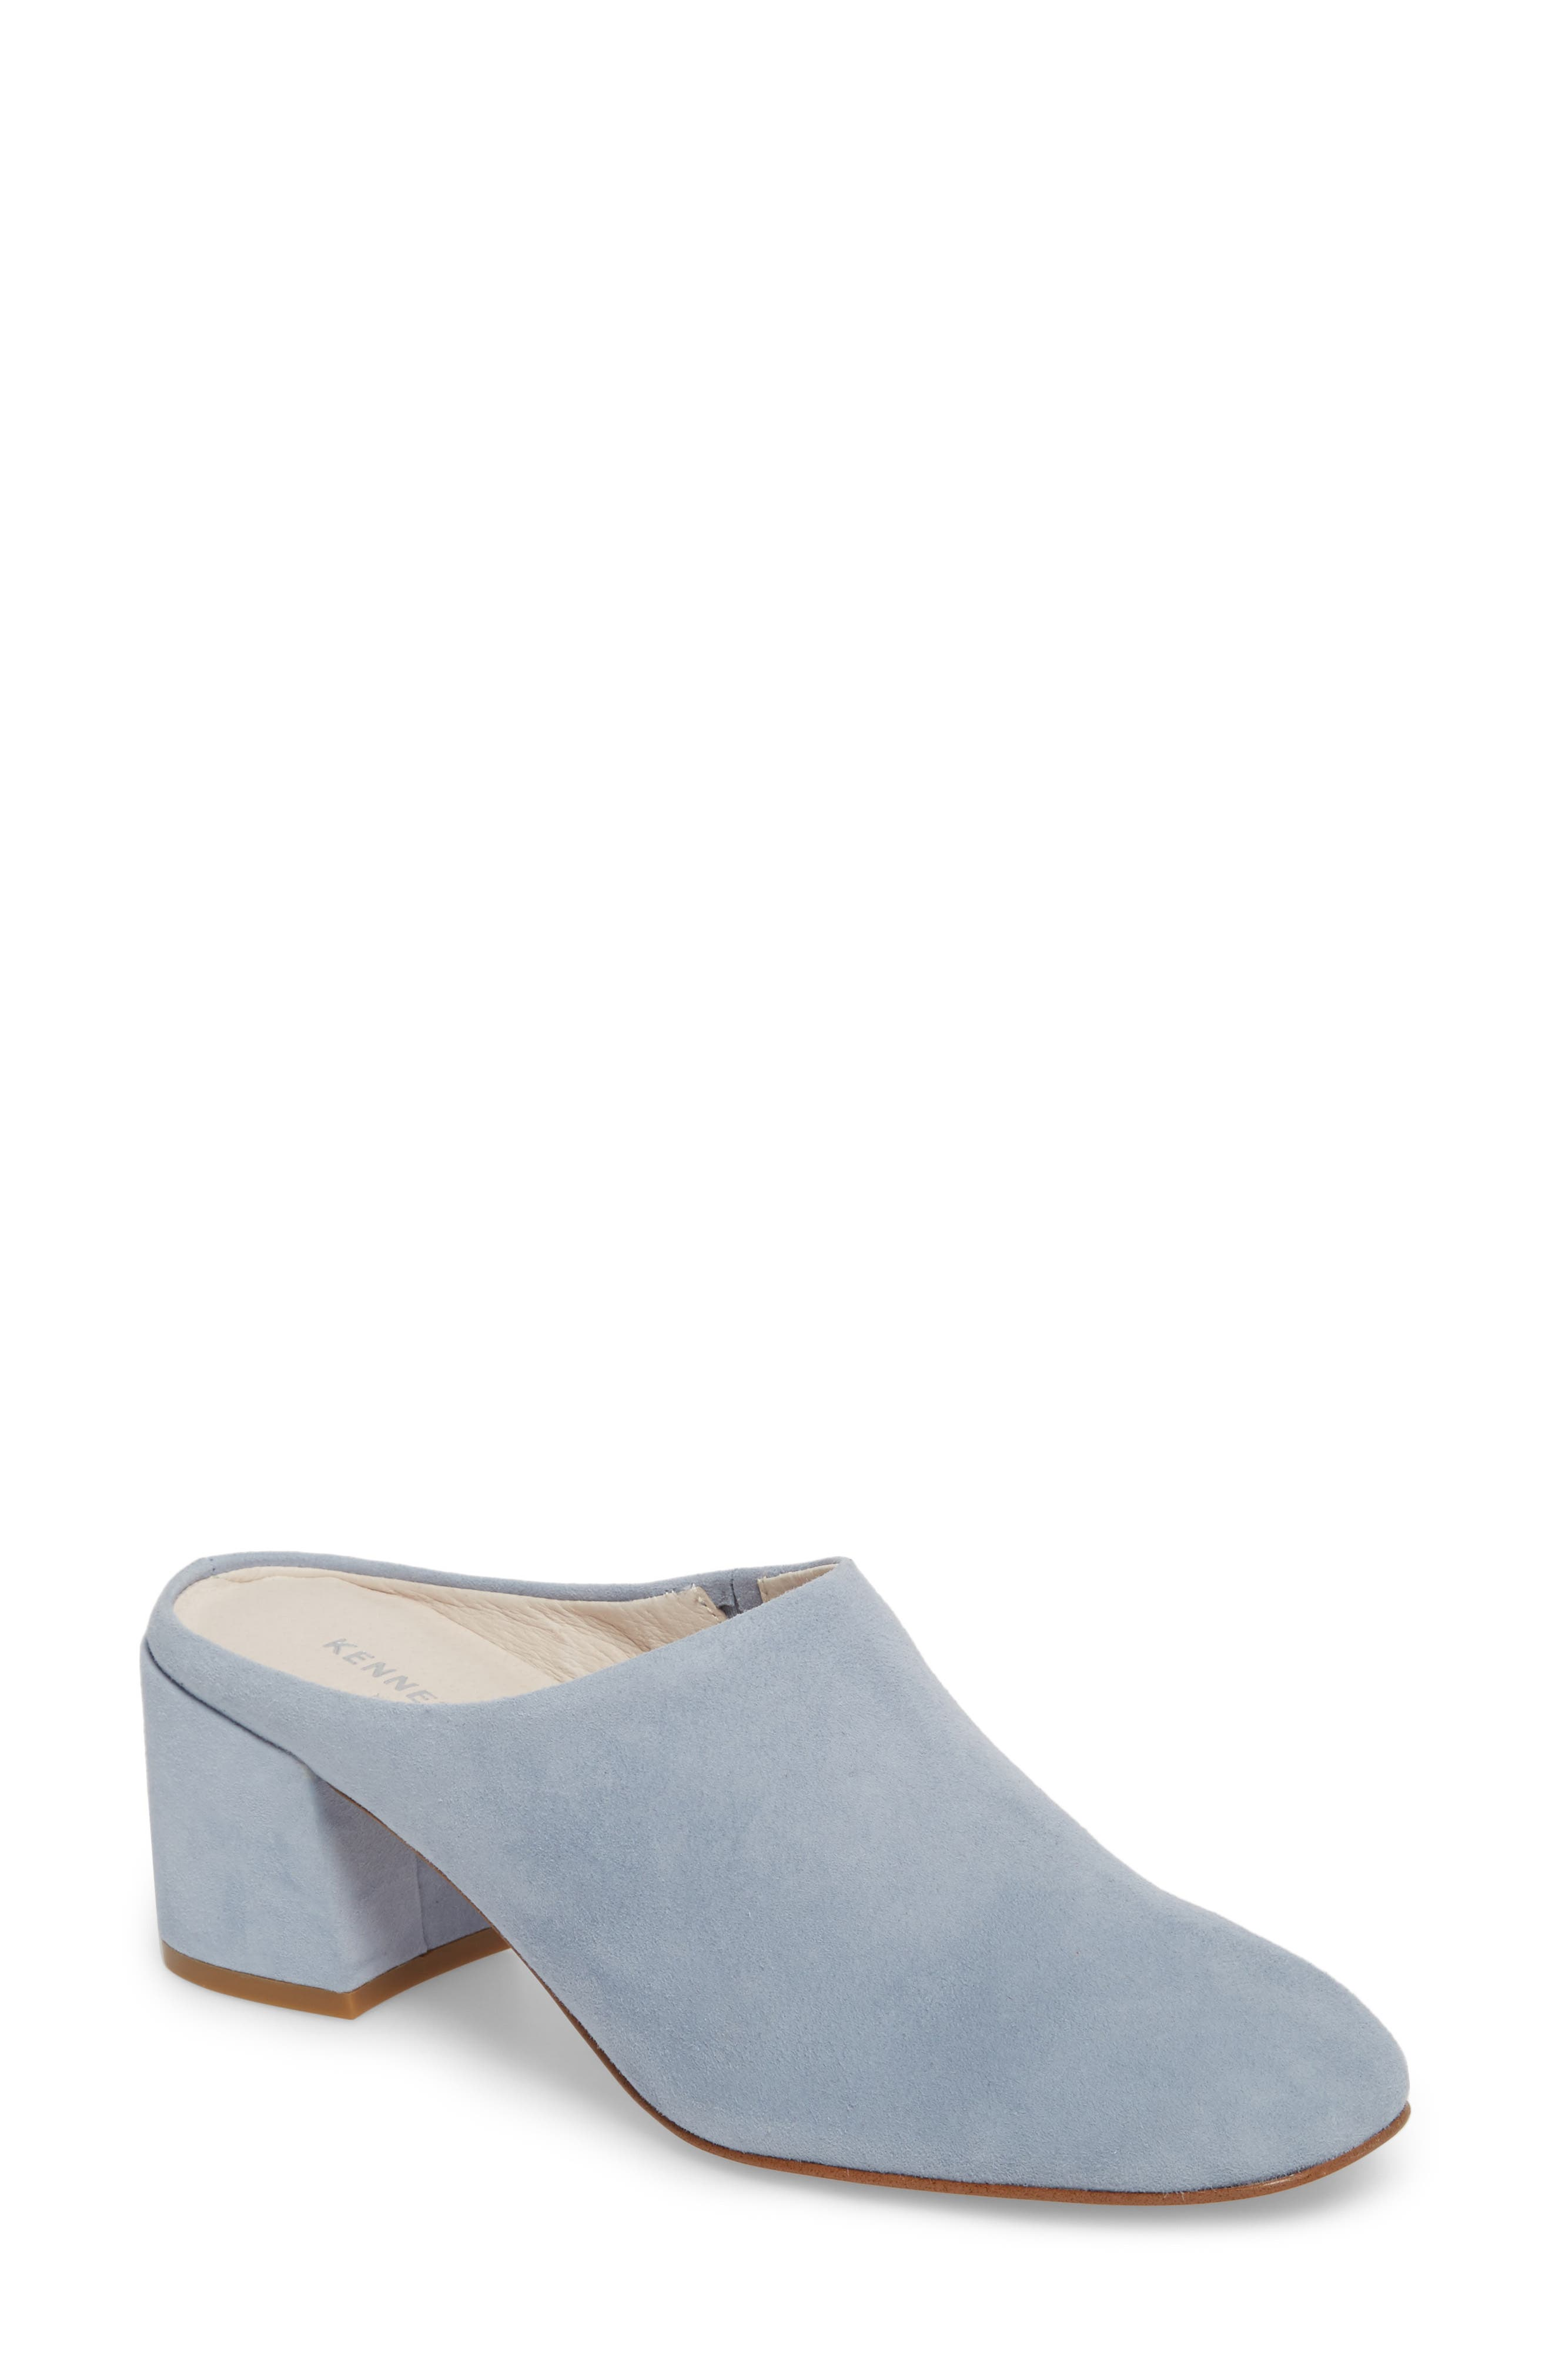 Edith Mule,                             Main thumbnail 1, color,                             Storm Suede